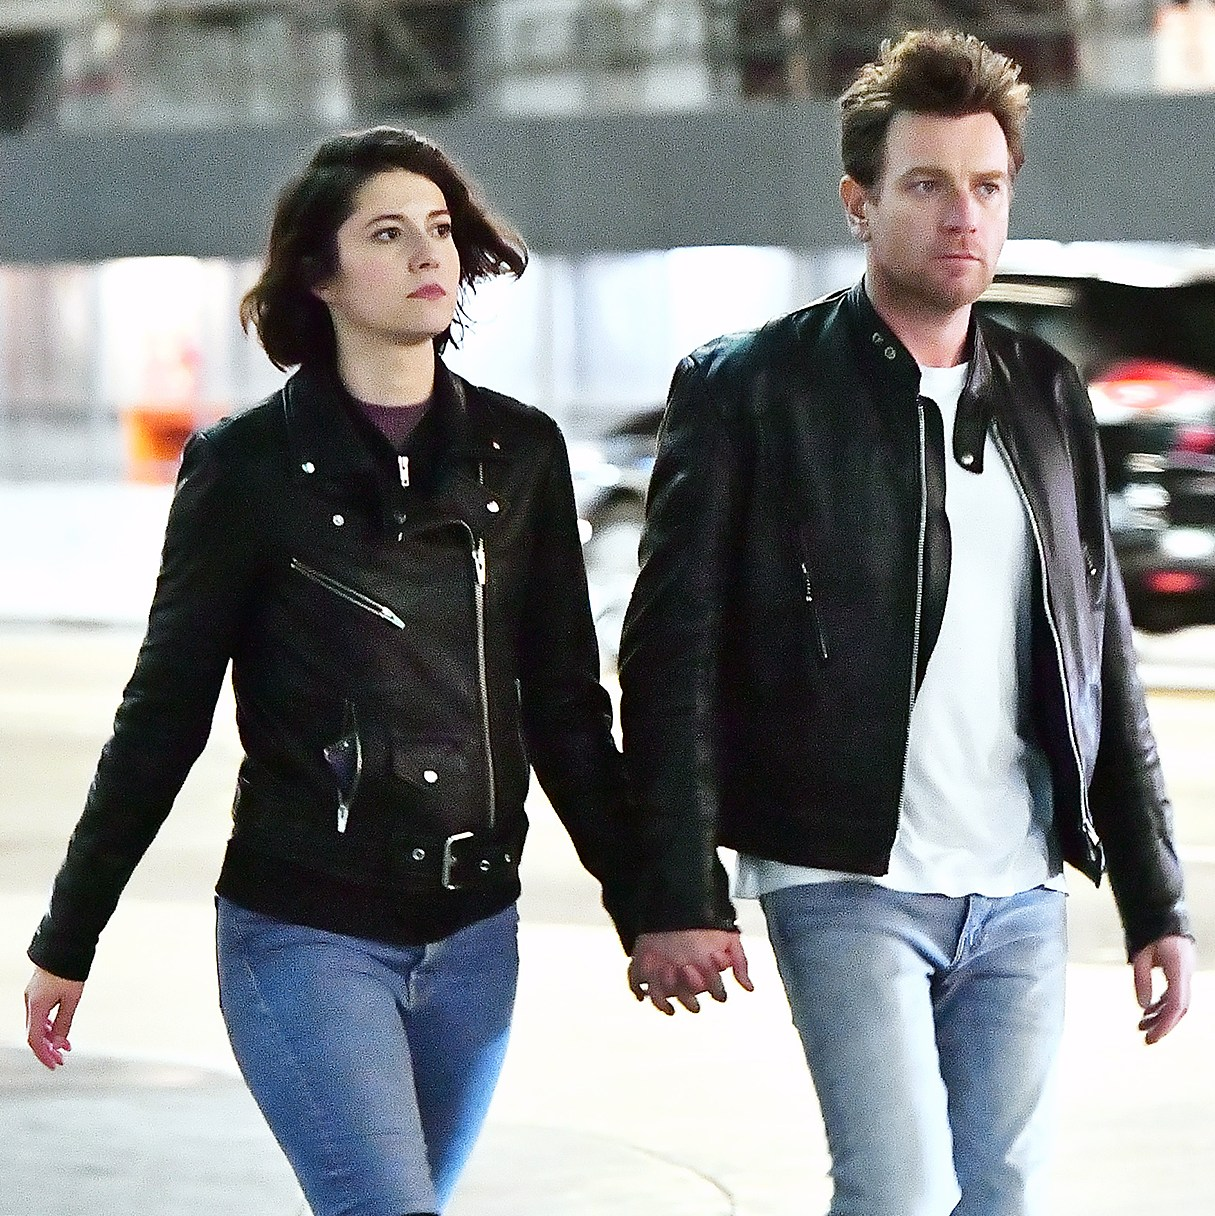 Mary Elizabeth Winstead Ewan McGregor holding hands